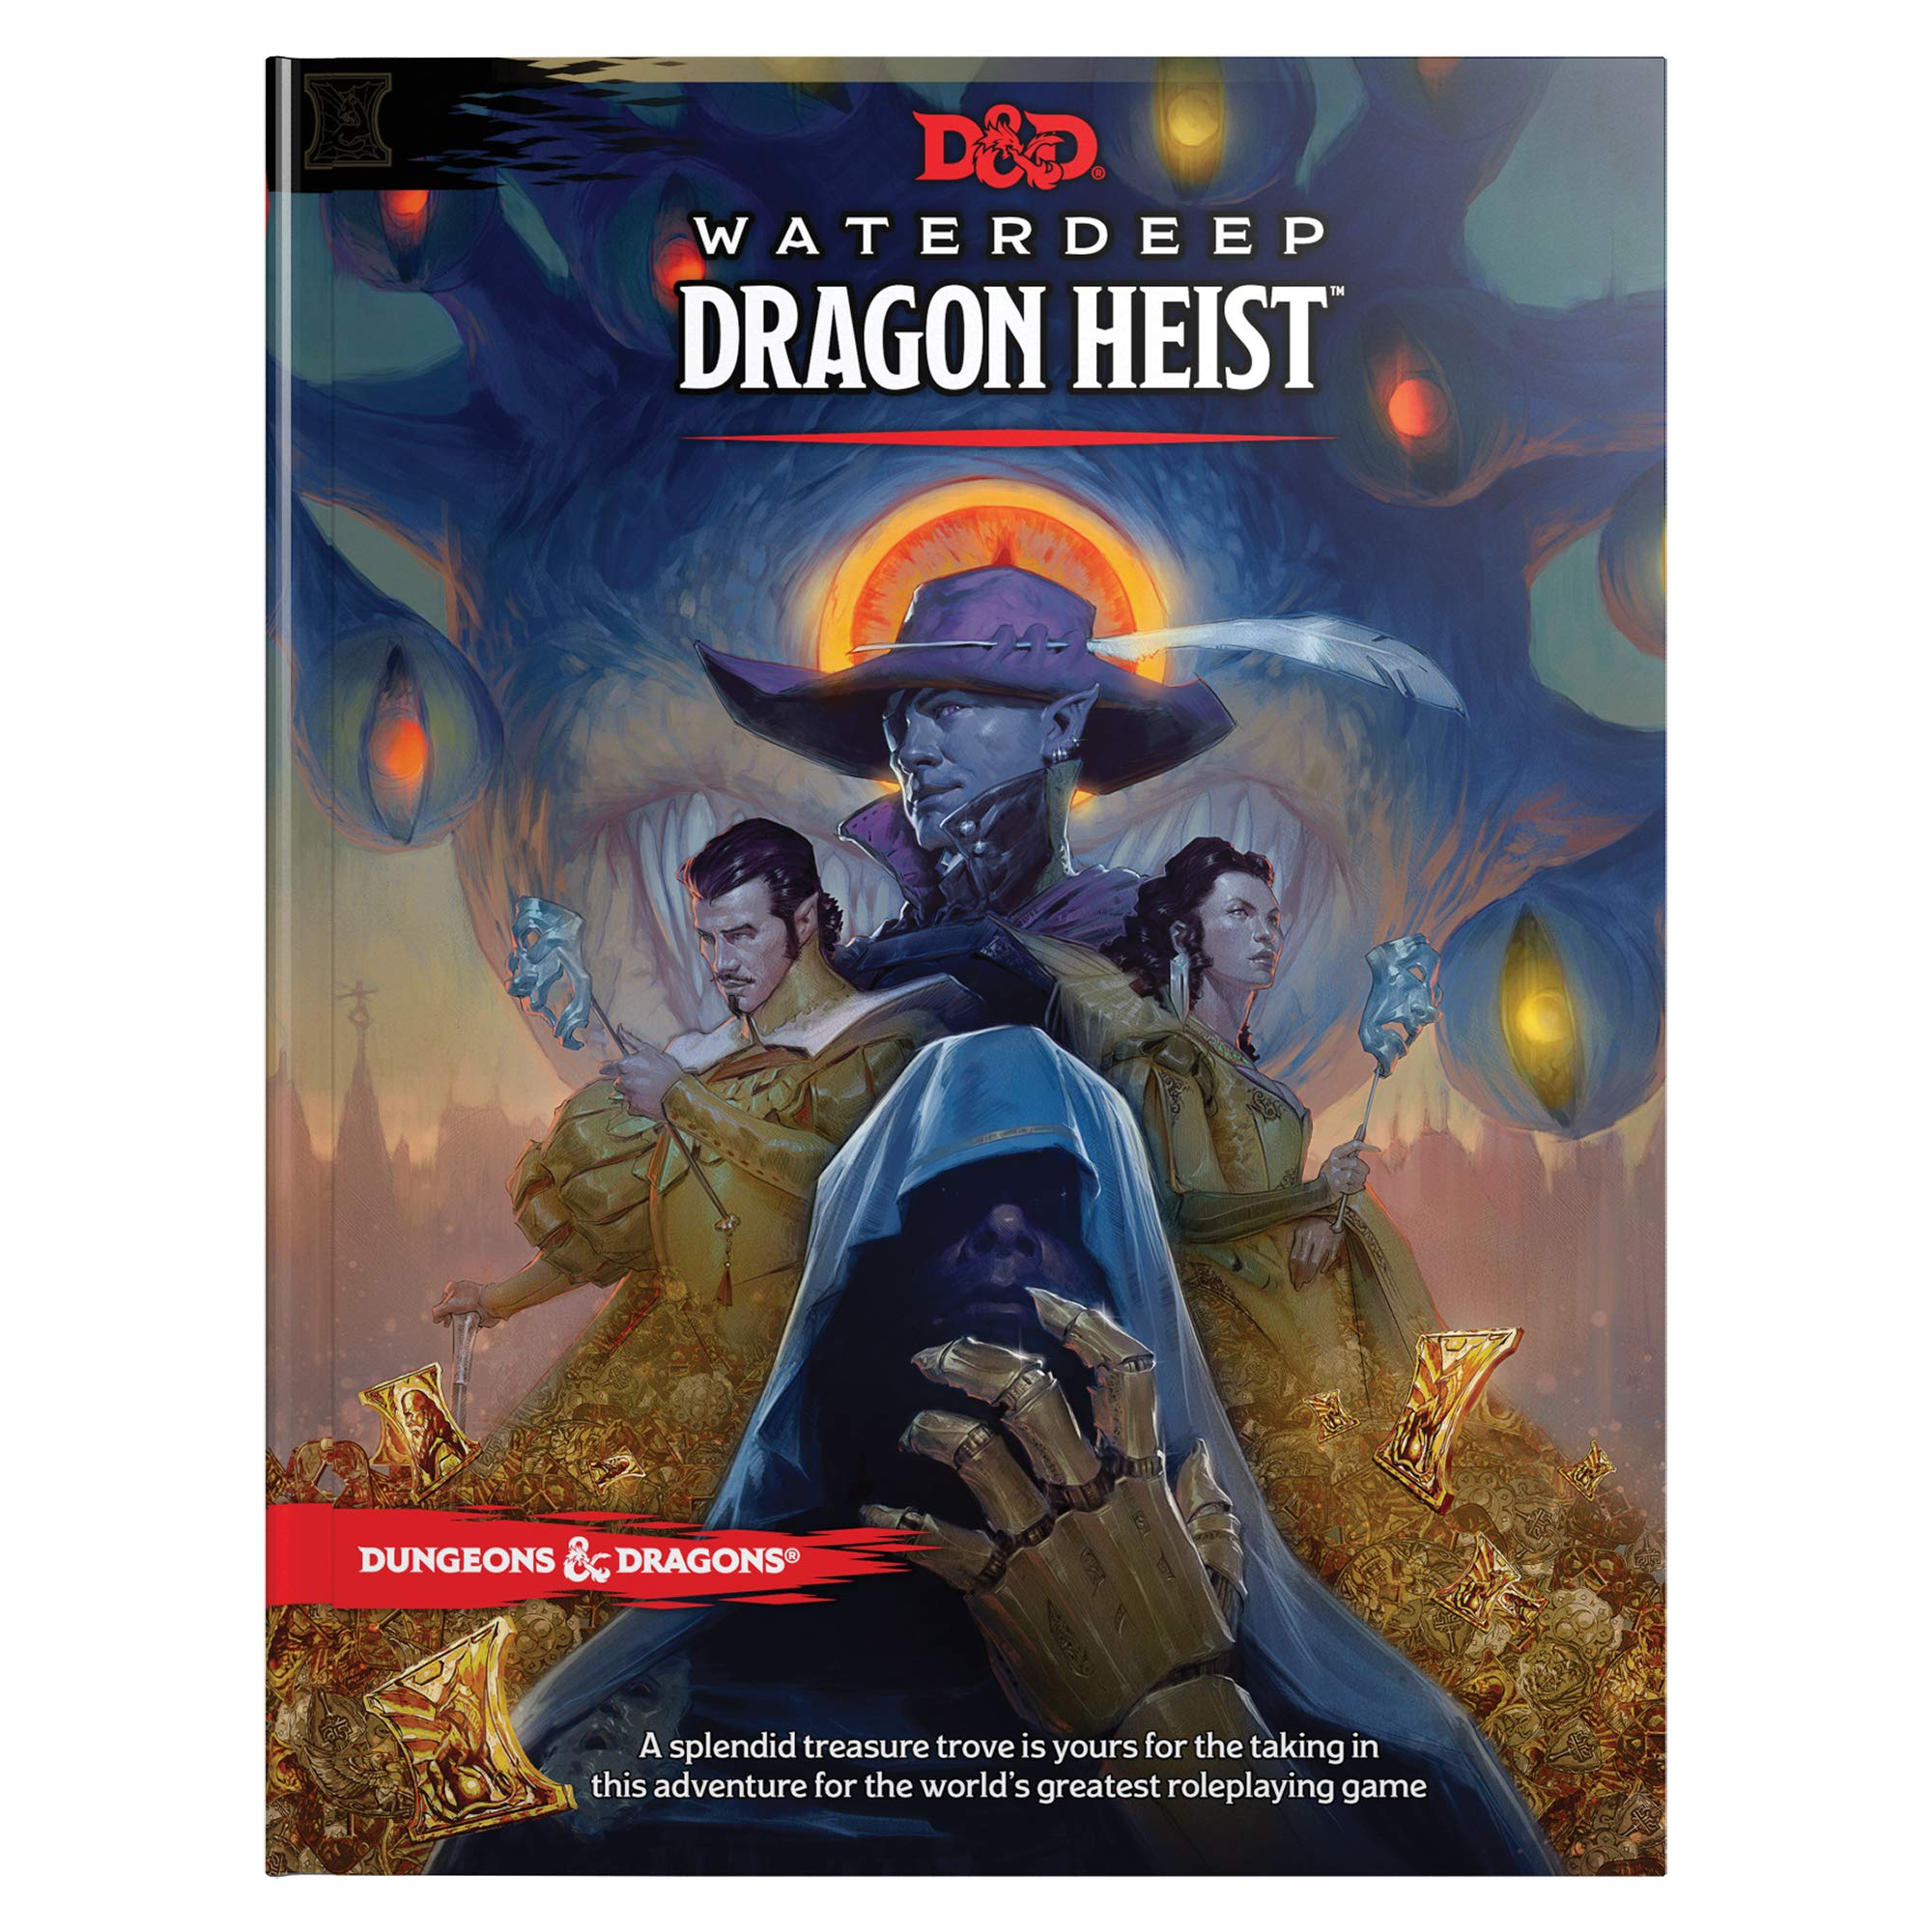 D&D Waterdeep Dragon Heist HC (Dungeons & Dragons) by Hasbro